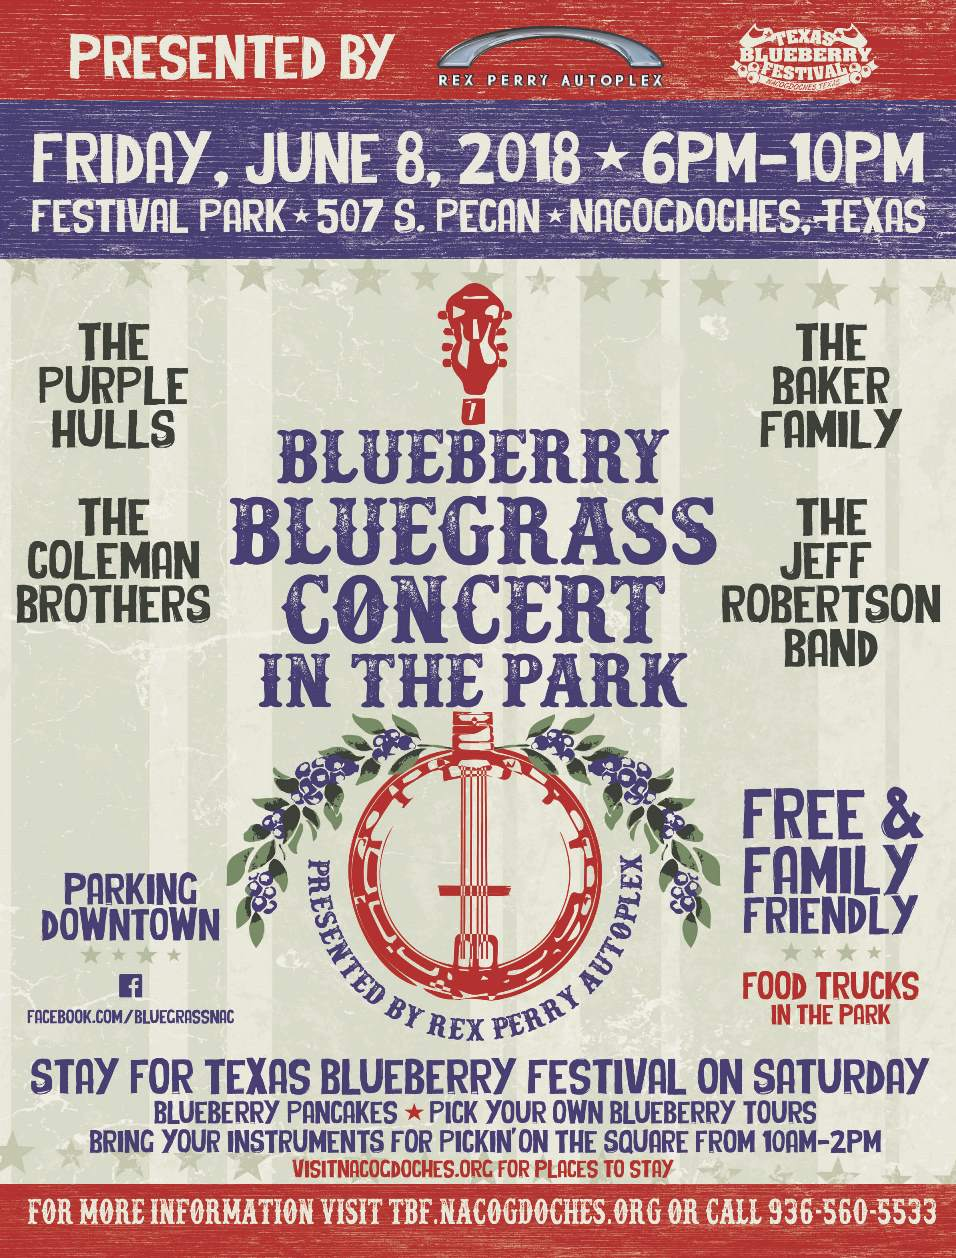 Blueberry Bluegrass Concert in the Park 2018